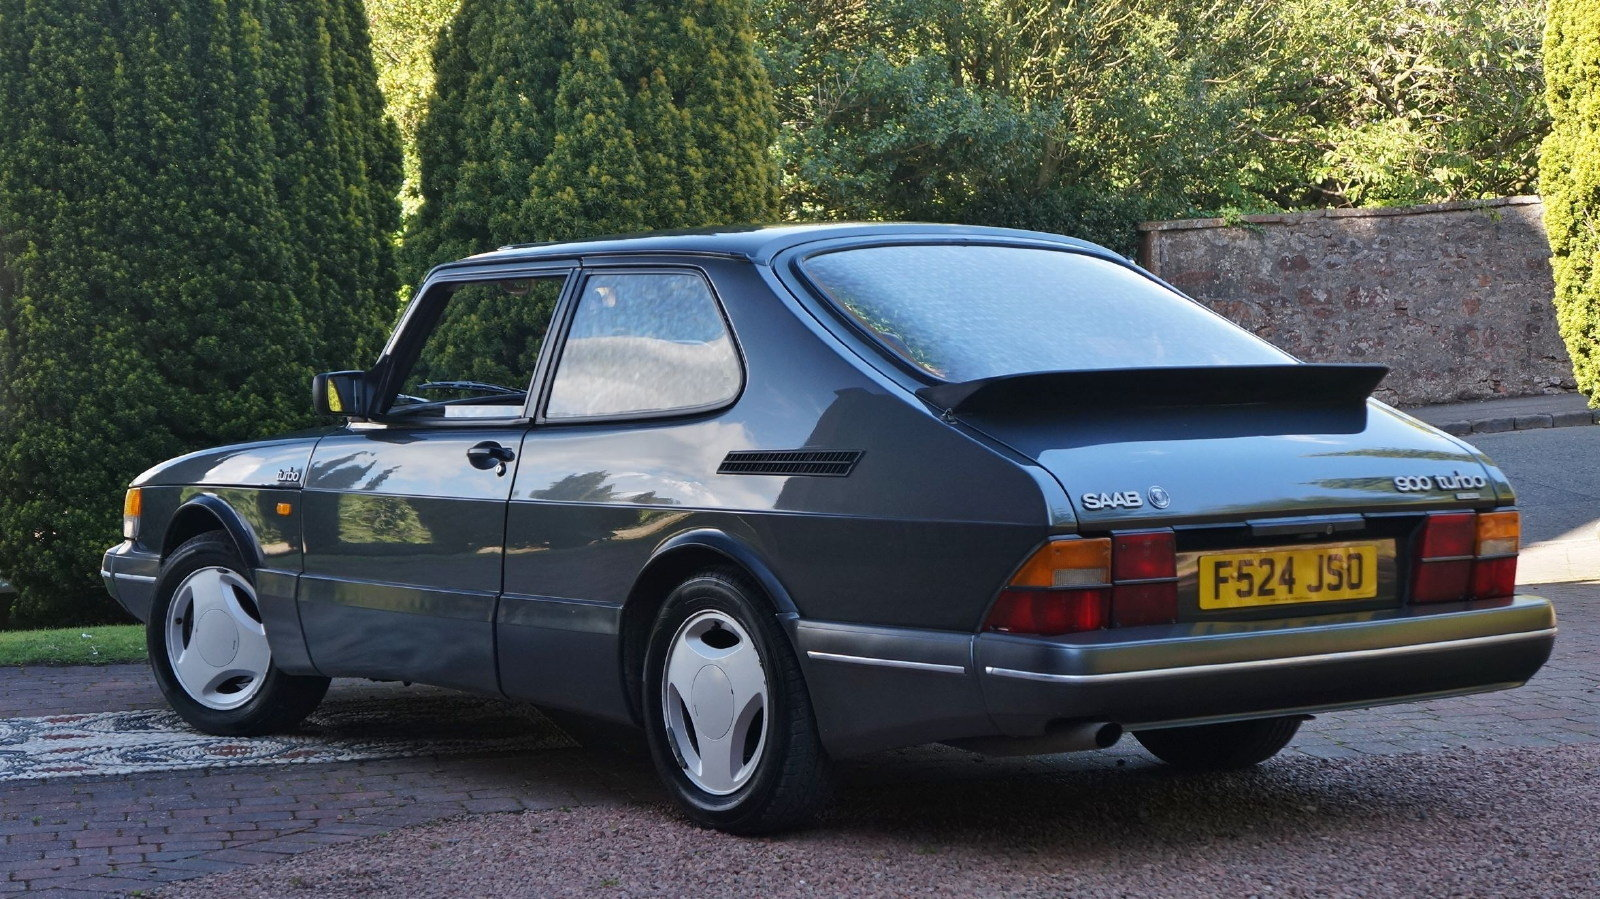 1989 saab 900 t16 s 16v turbo coupe 22 services SOLD (picture 2 of 6)